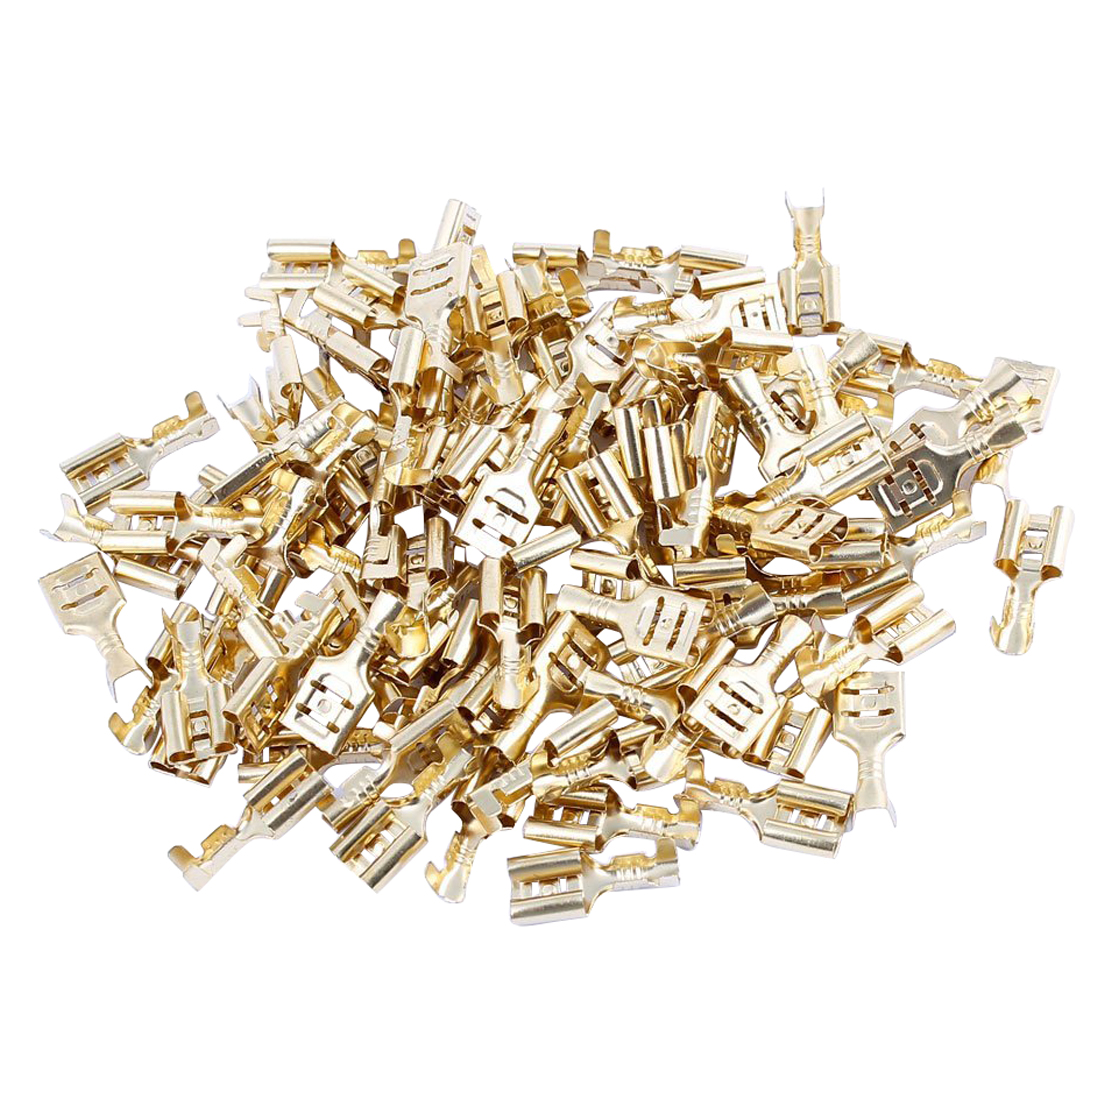 100 Pcs Car Speaker 6.3mm Female Spade Terminal Wire Connector